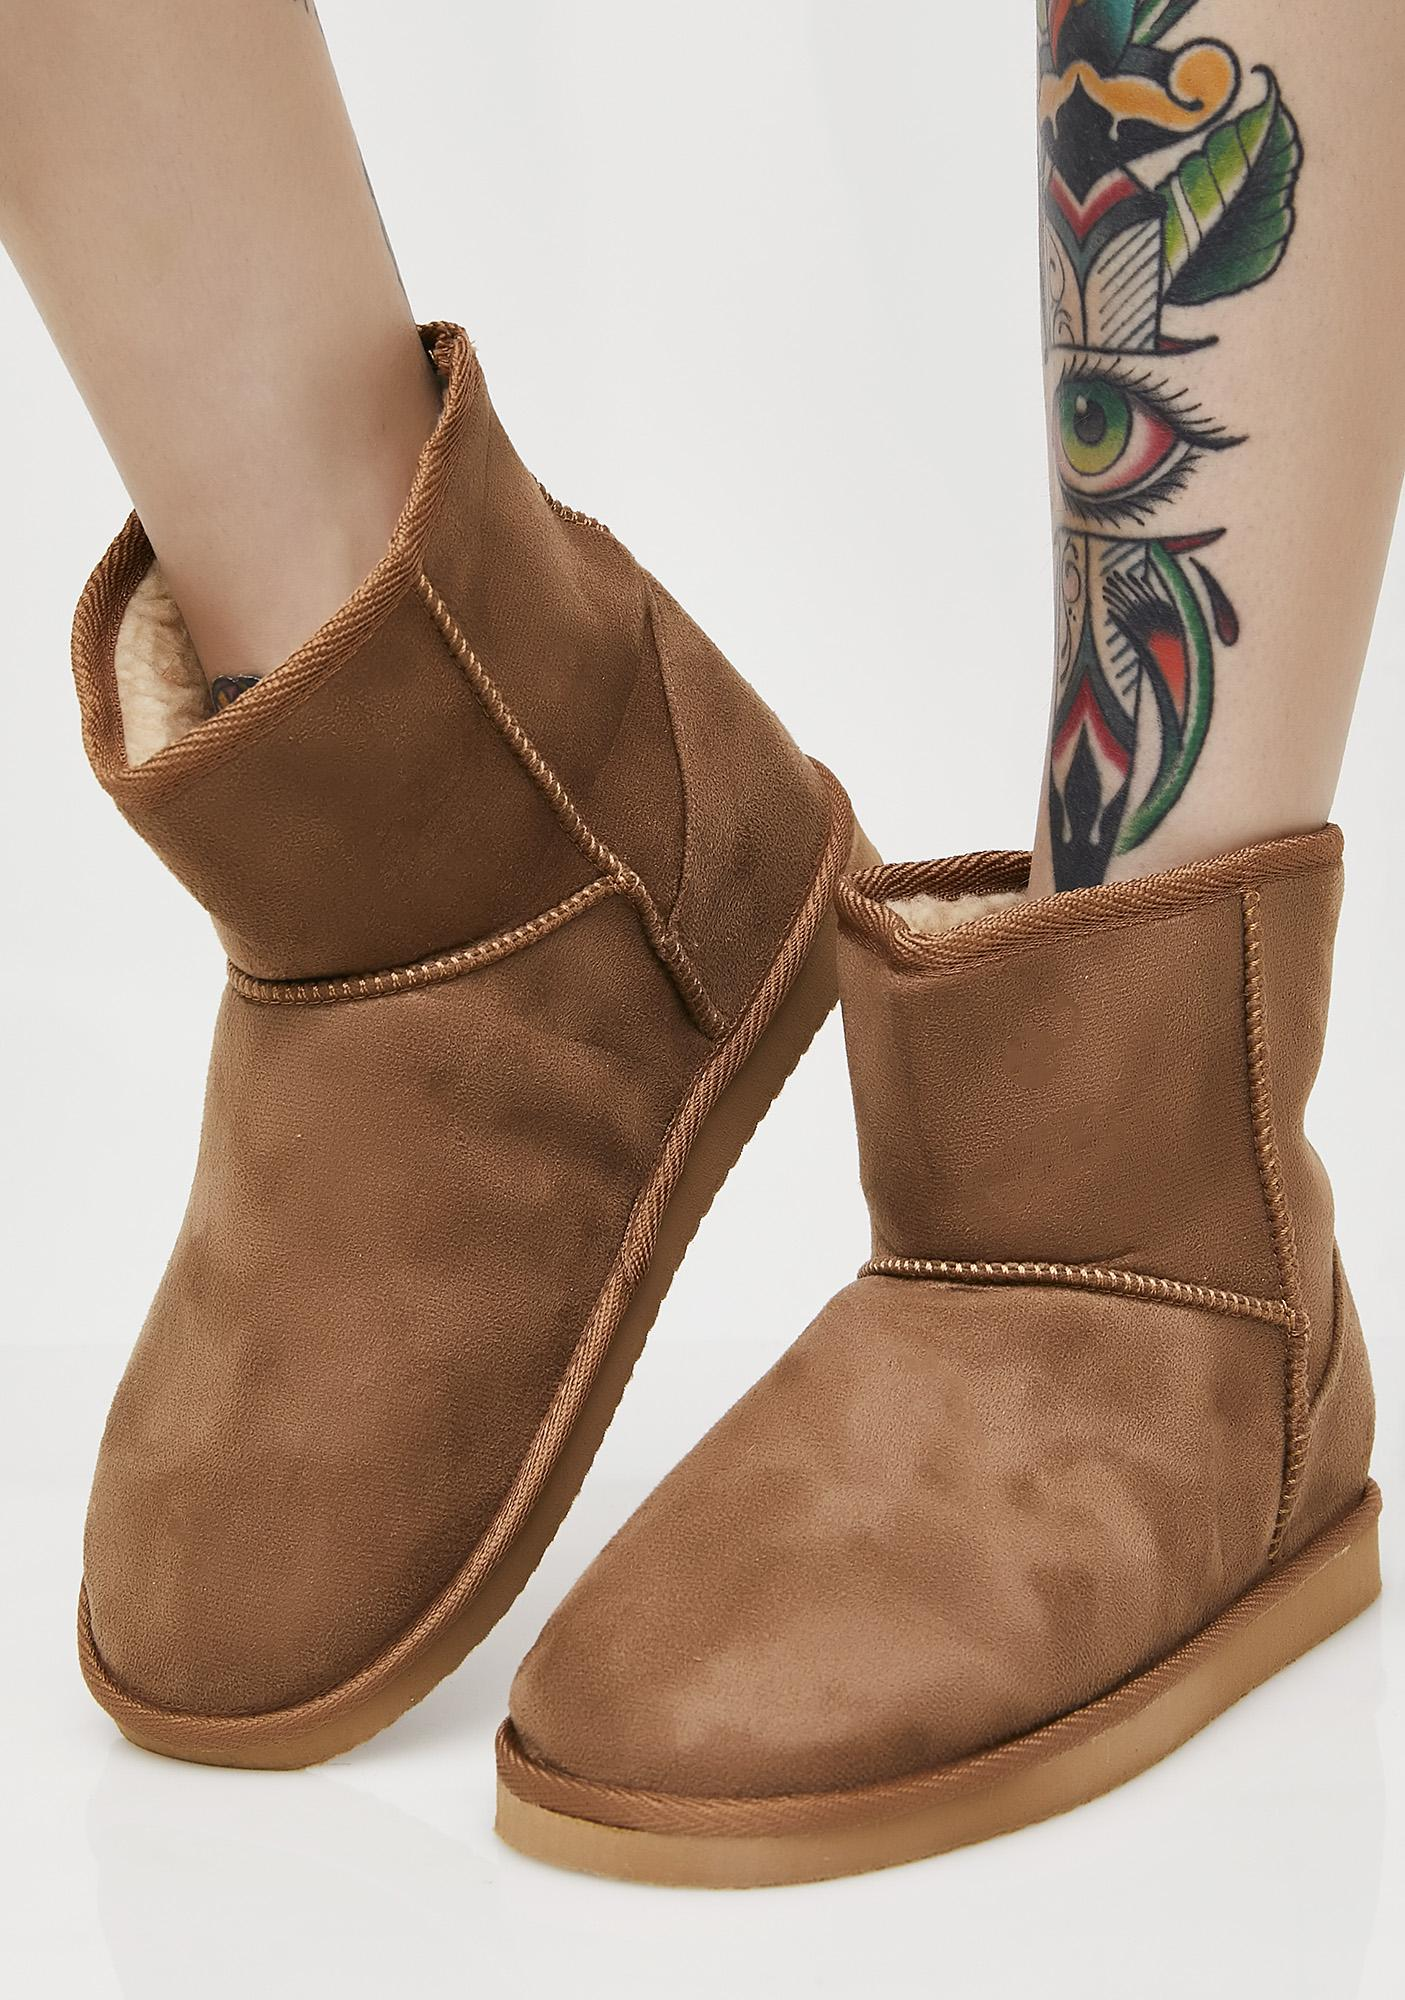 Chestnut Too Comfy Slipper Boots